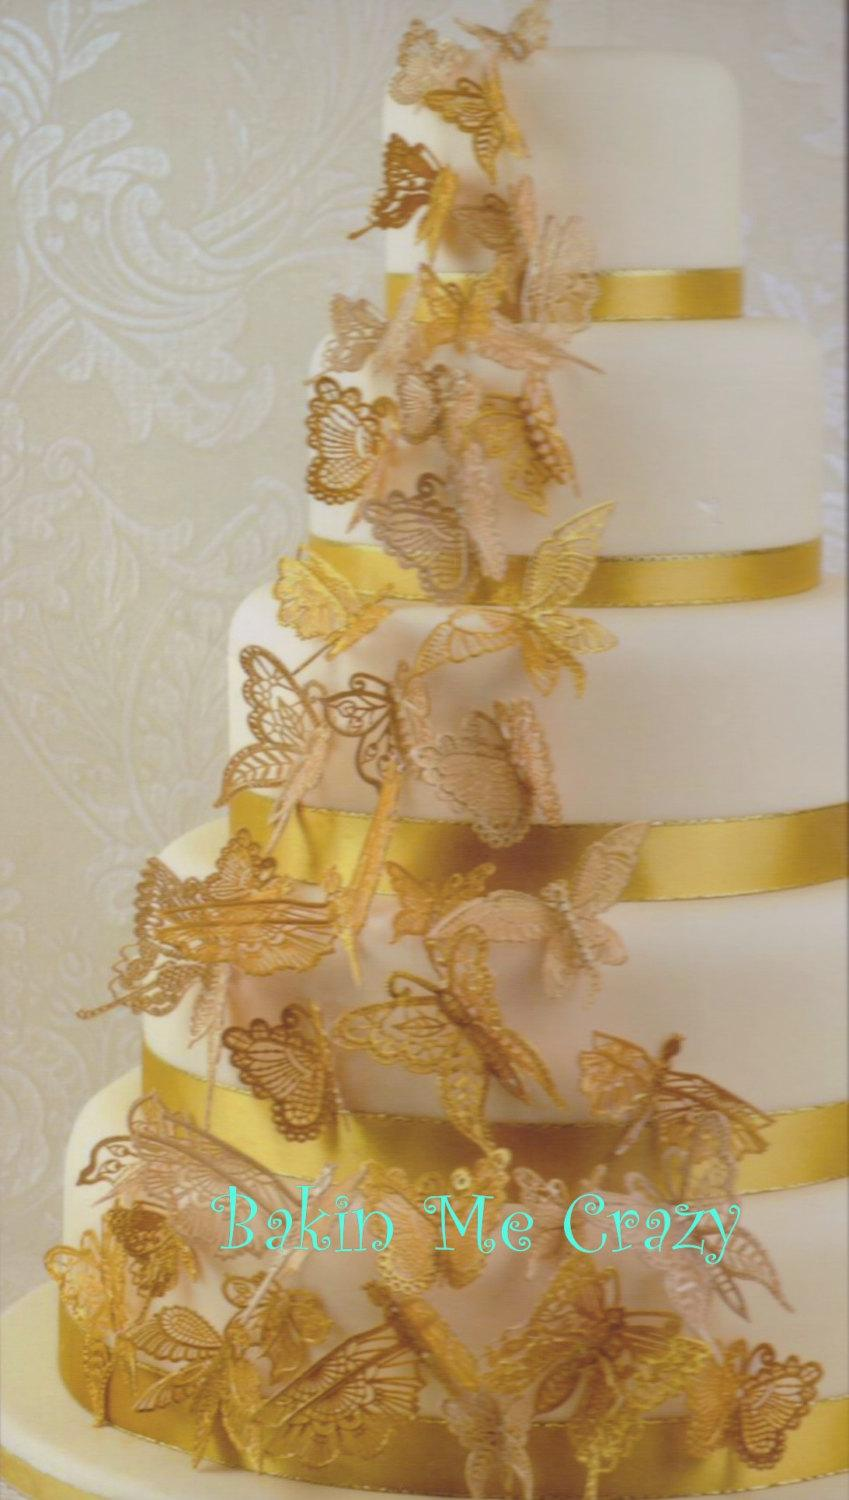 edible gold wedding cake decorations 24 edible cake lace 3d butterflies for weddings 13907